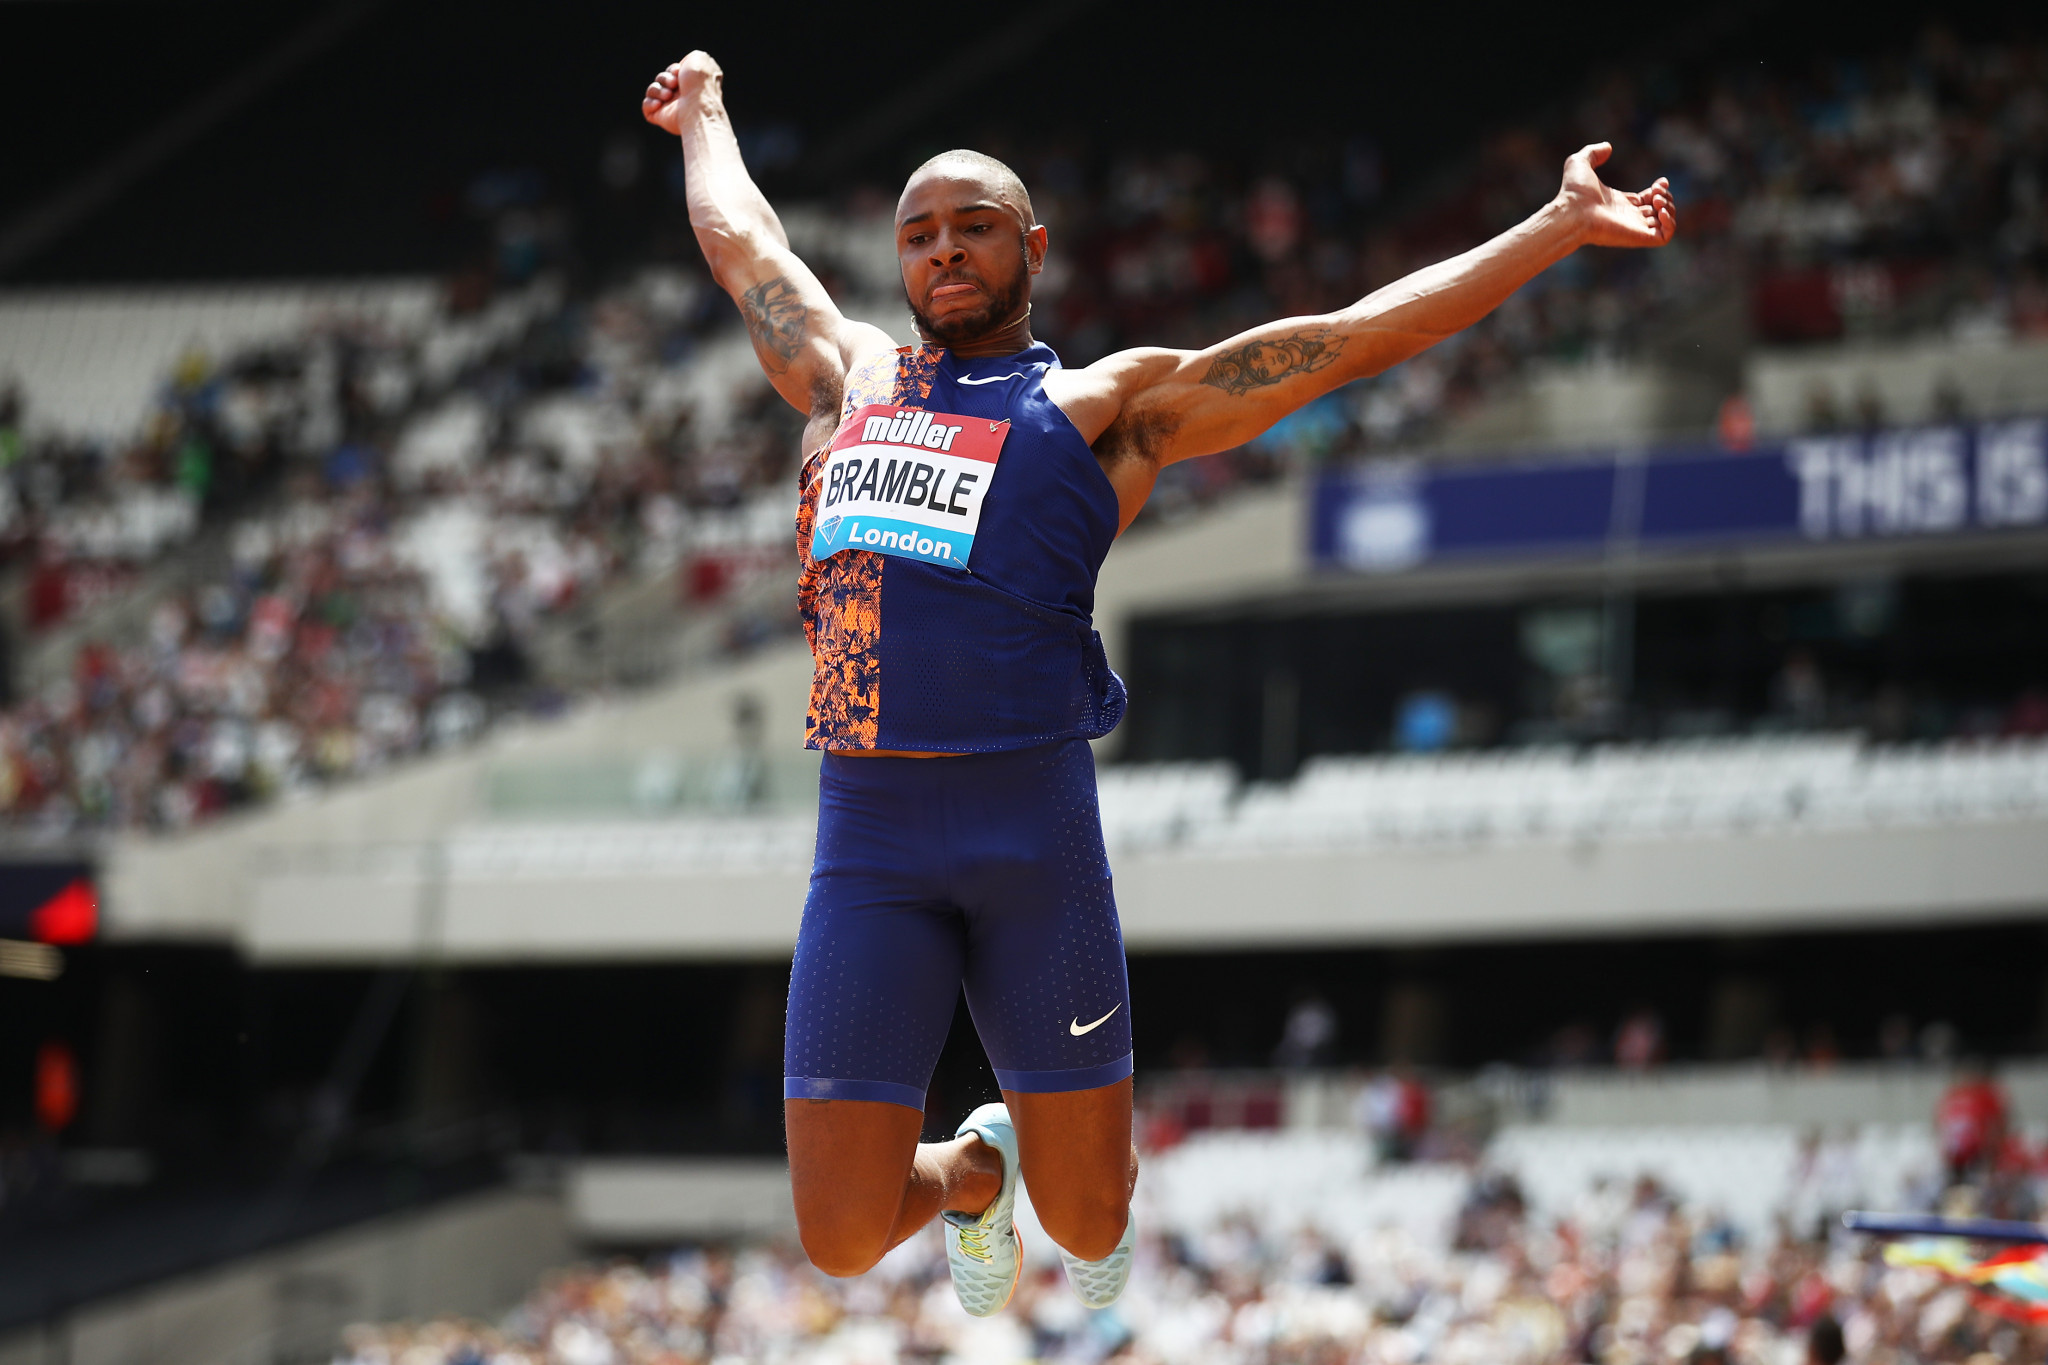 British long jumper Bramble reaches fundraising goal to aid Tokyo 2020 ambition